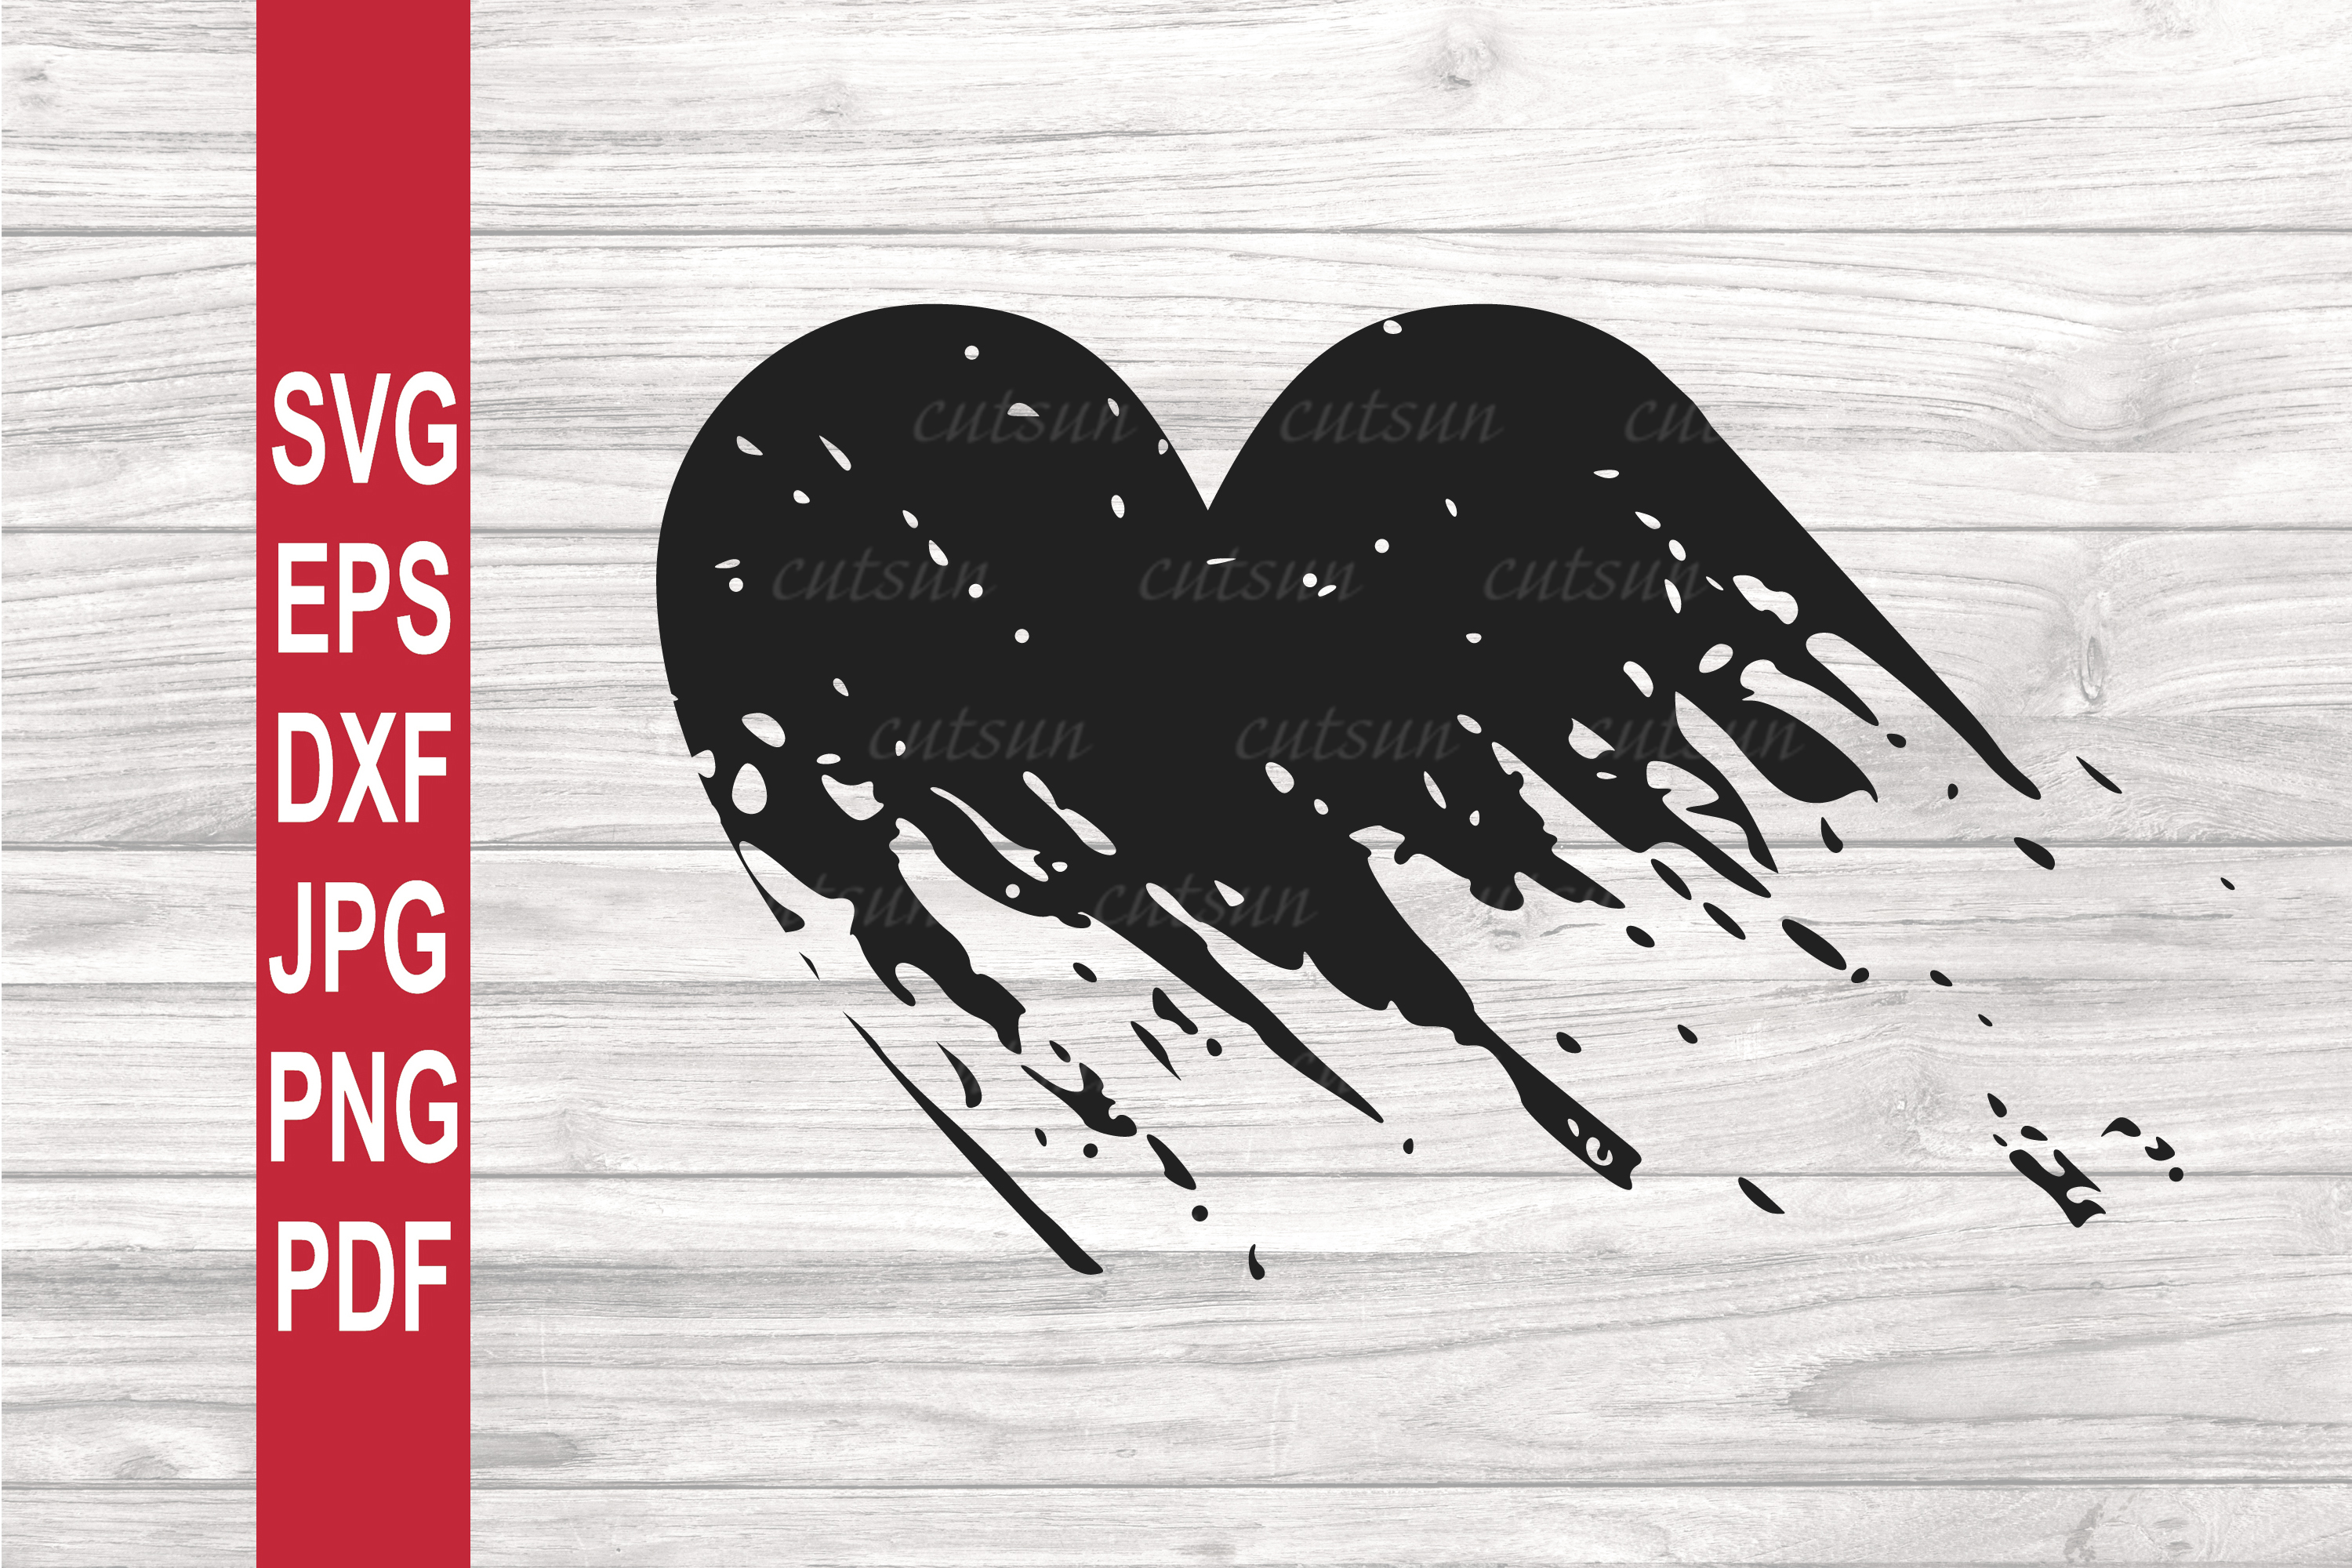 Valentine SVG | Grunge heart SVG | Distressed heart SVG example image 1